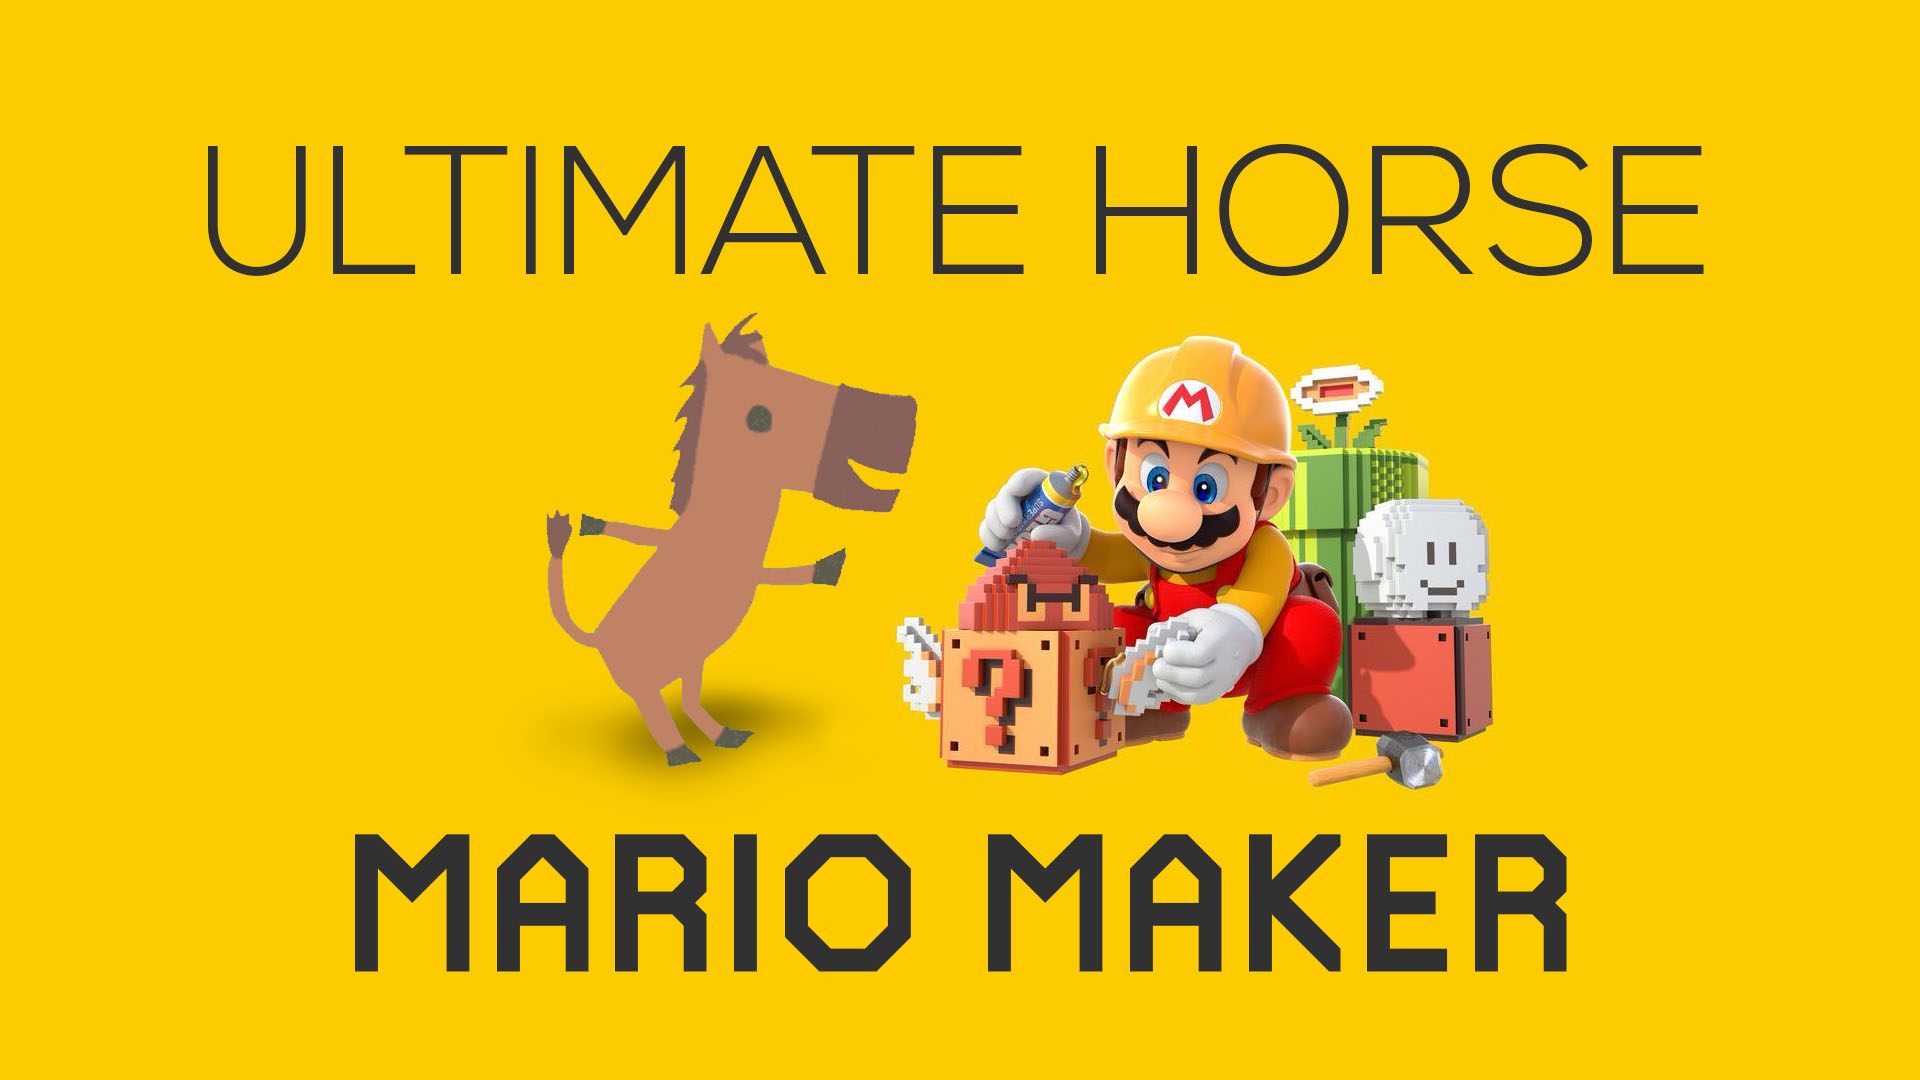 Mario Maker Ultimate Horse